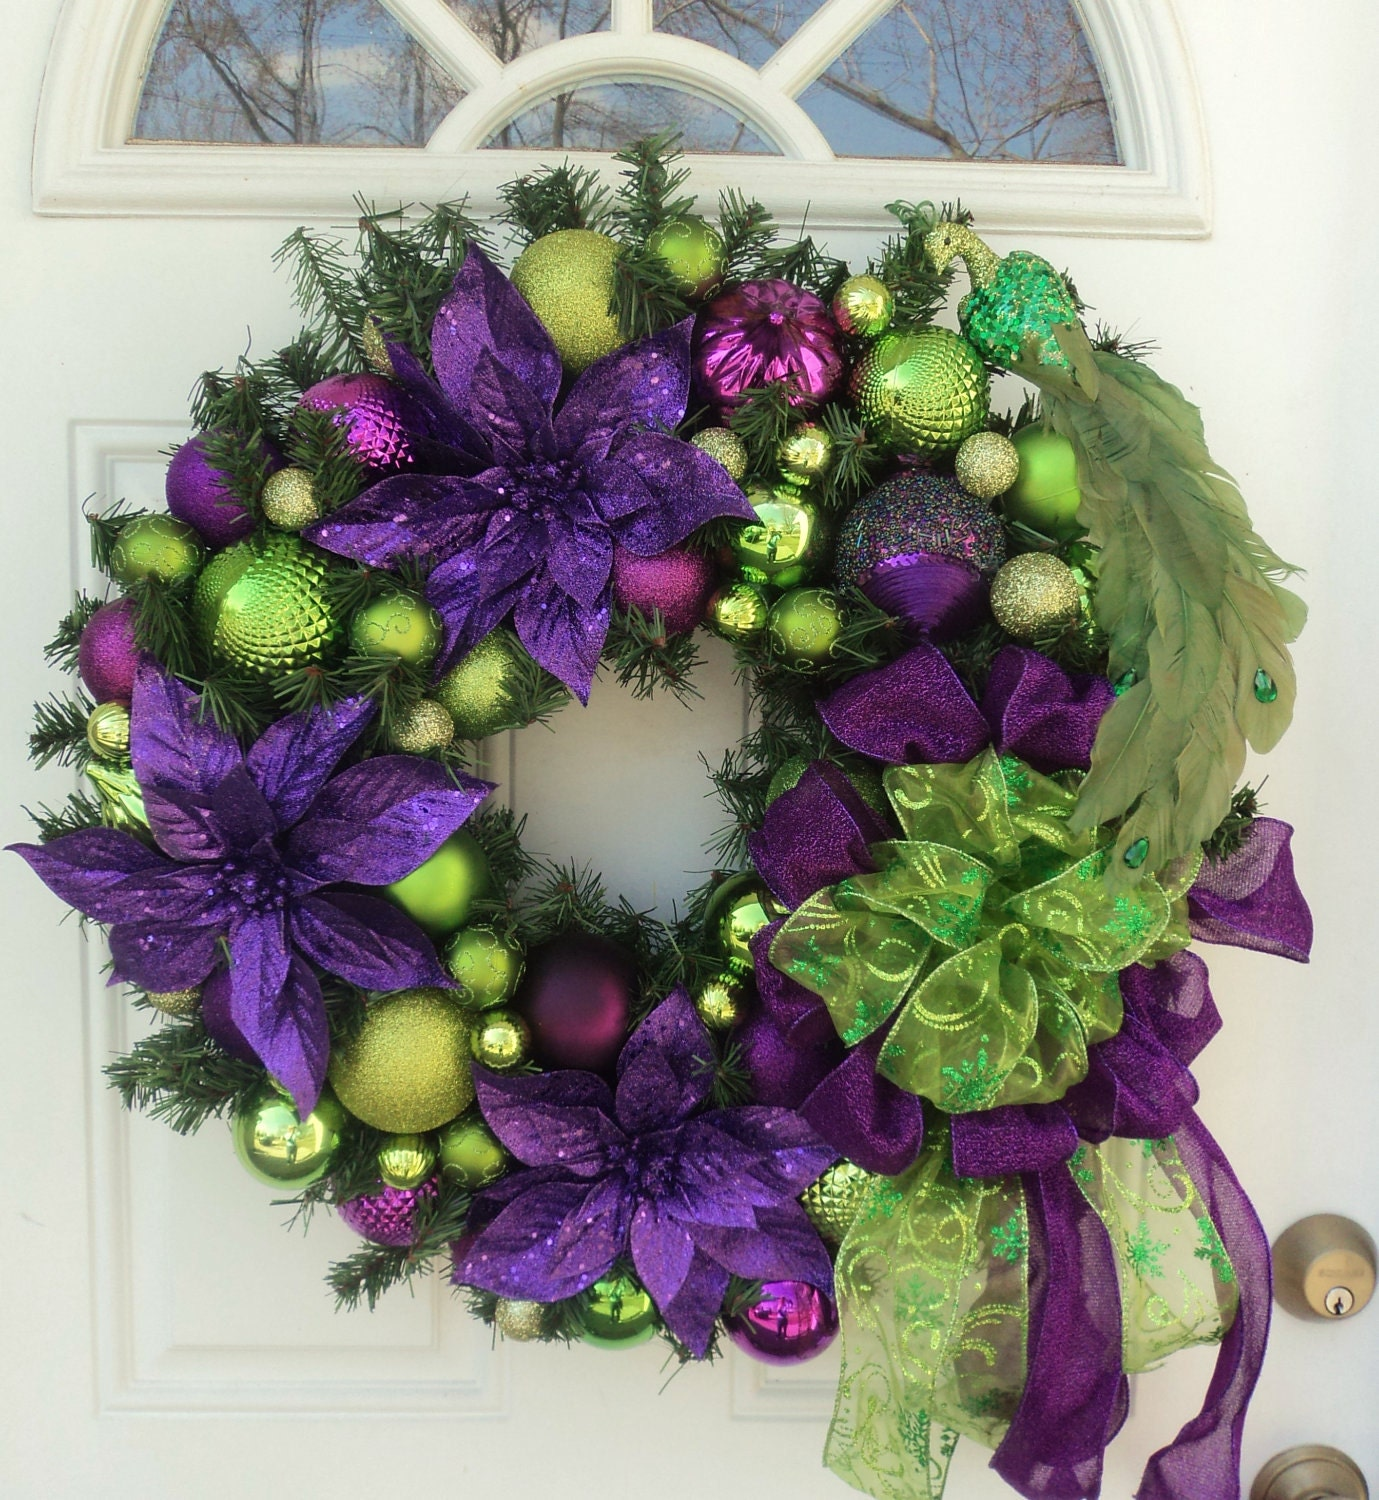 Peacock purple lime green christmas wreath home decor purple Christmas wreath decorations